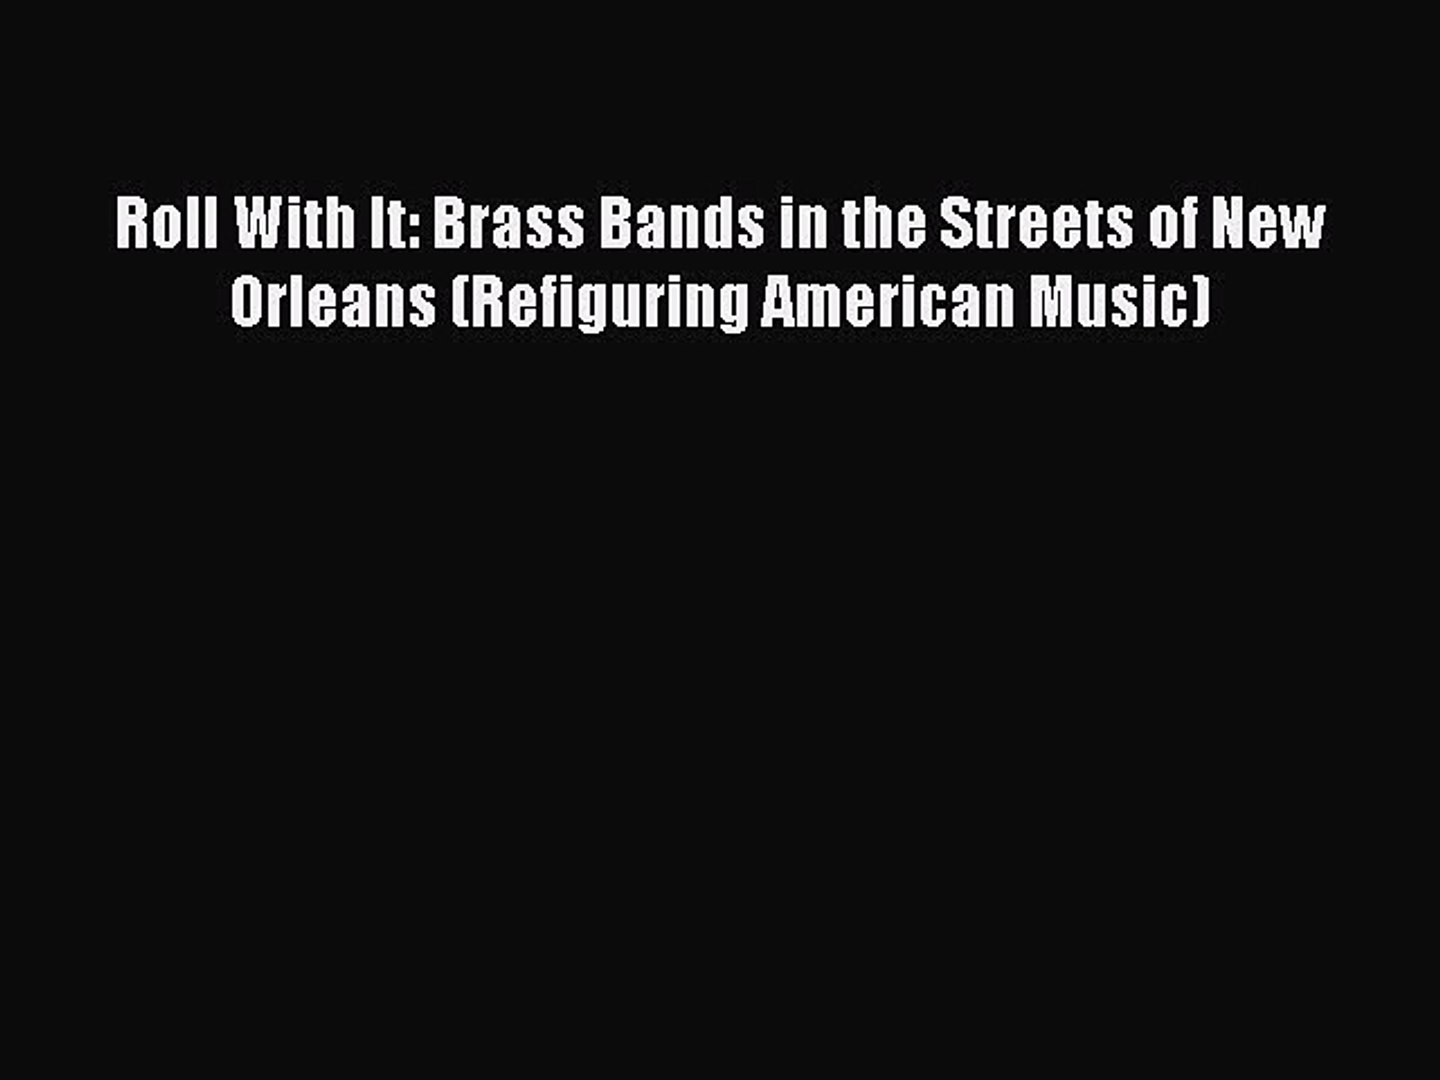 [PDF] Roll With It: Brass Bands in the Streets of New Orleans (Refiguring American Music) [Download]